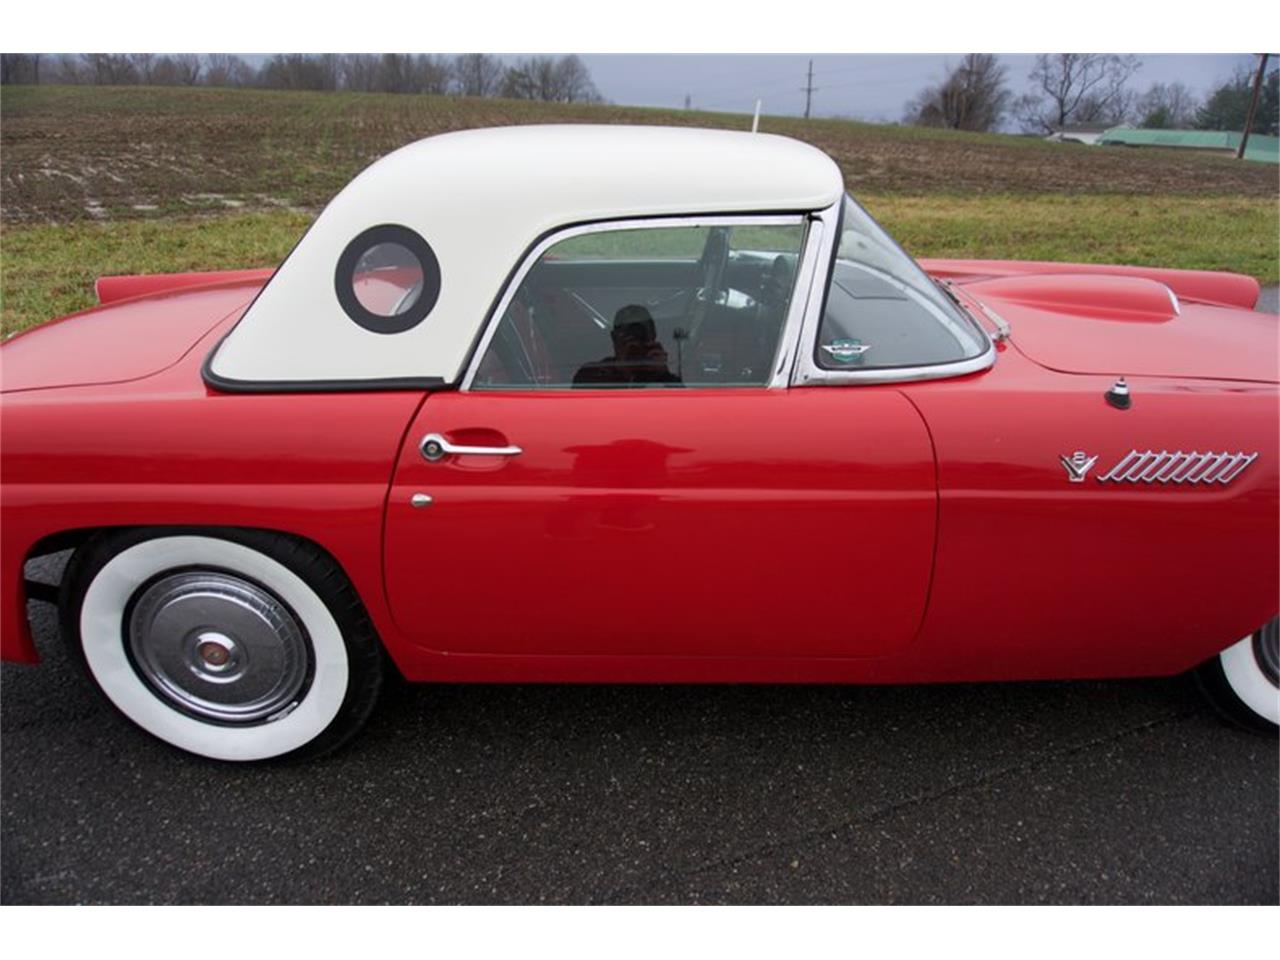 Large Picture of Classic 1955 Ford Thunderbird Offered by GAA Classic Cars Auctions - PDHS